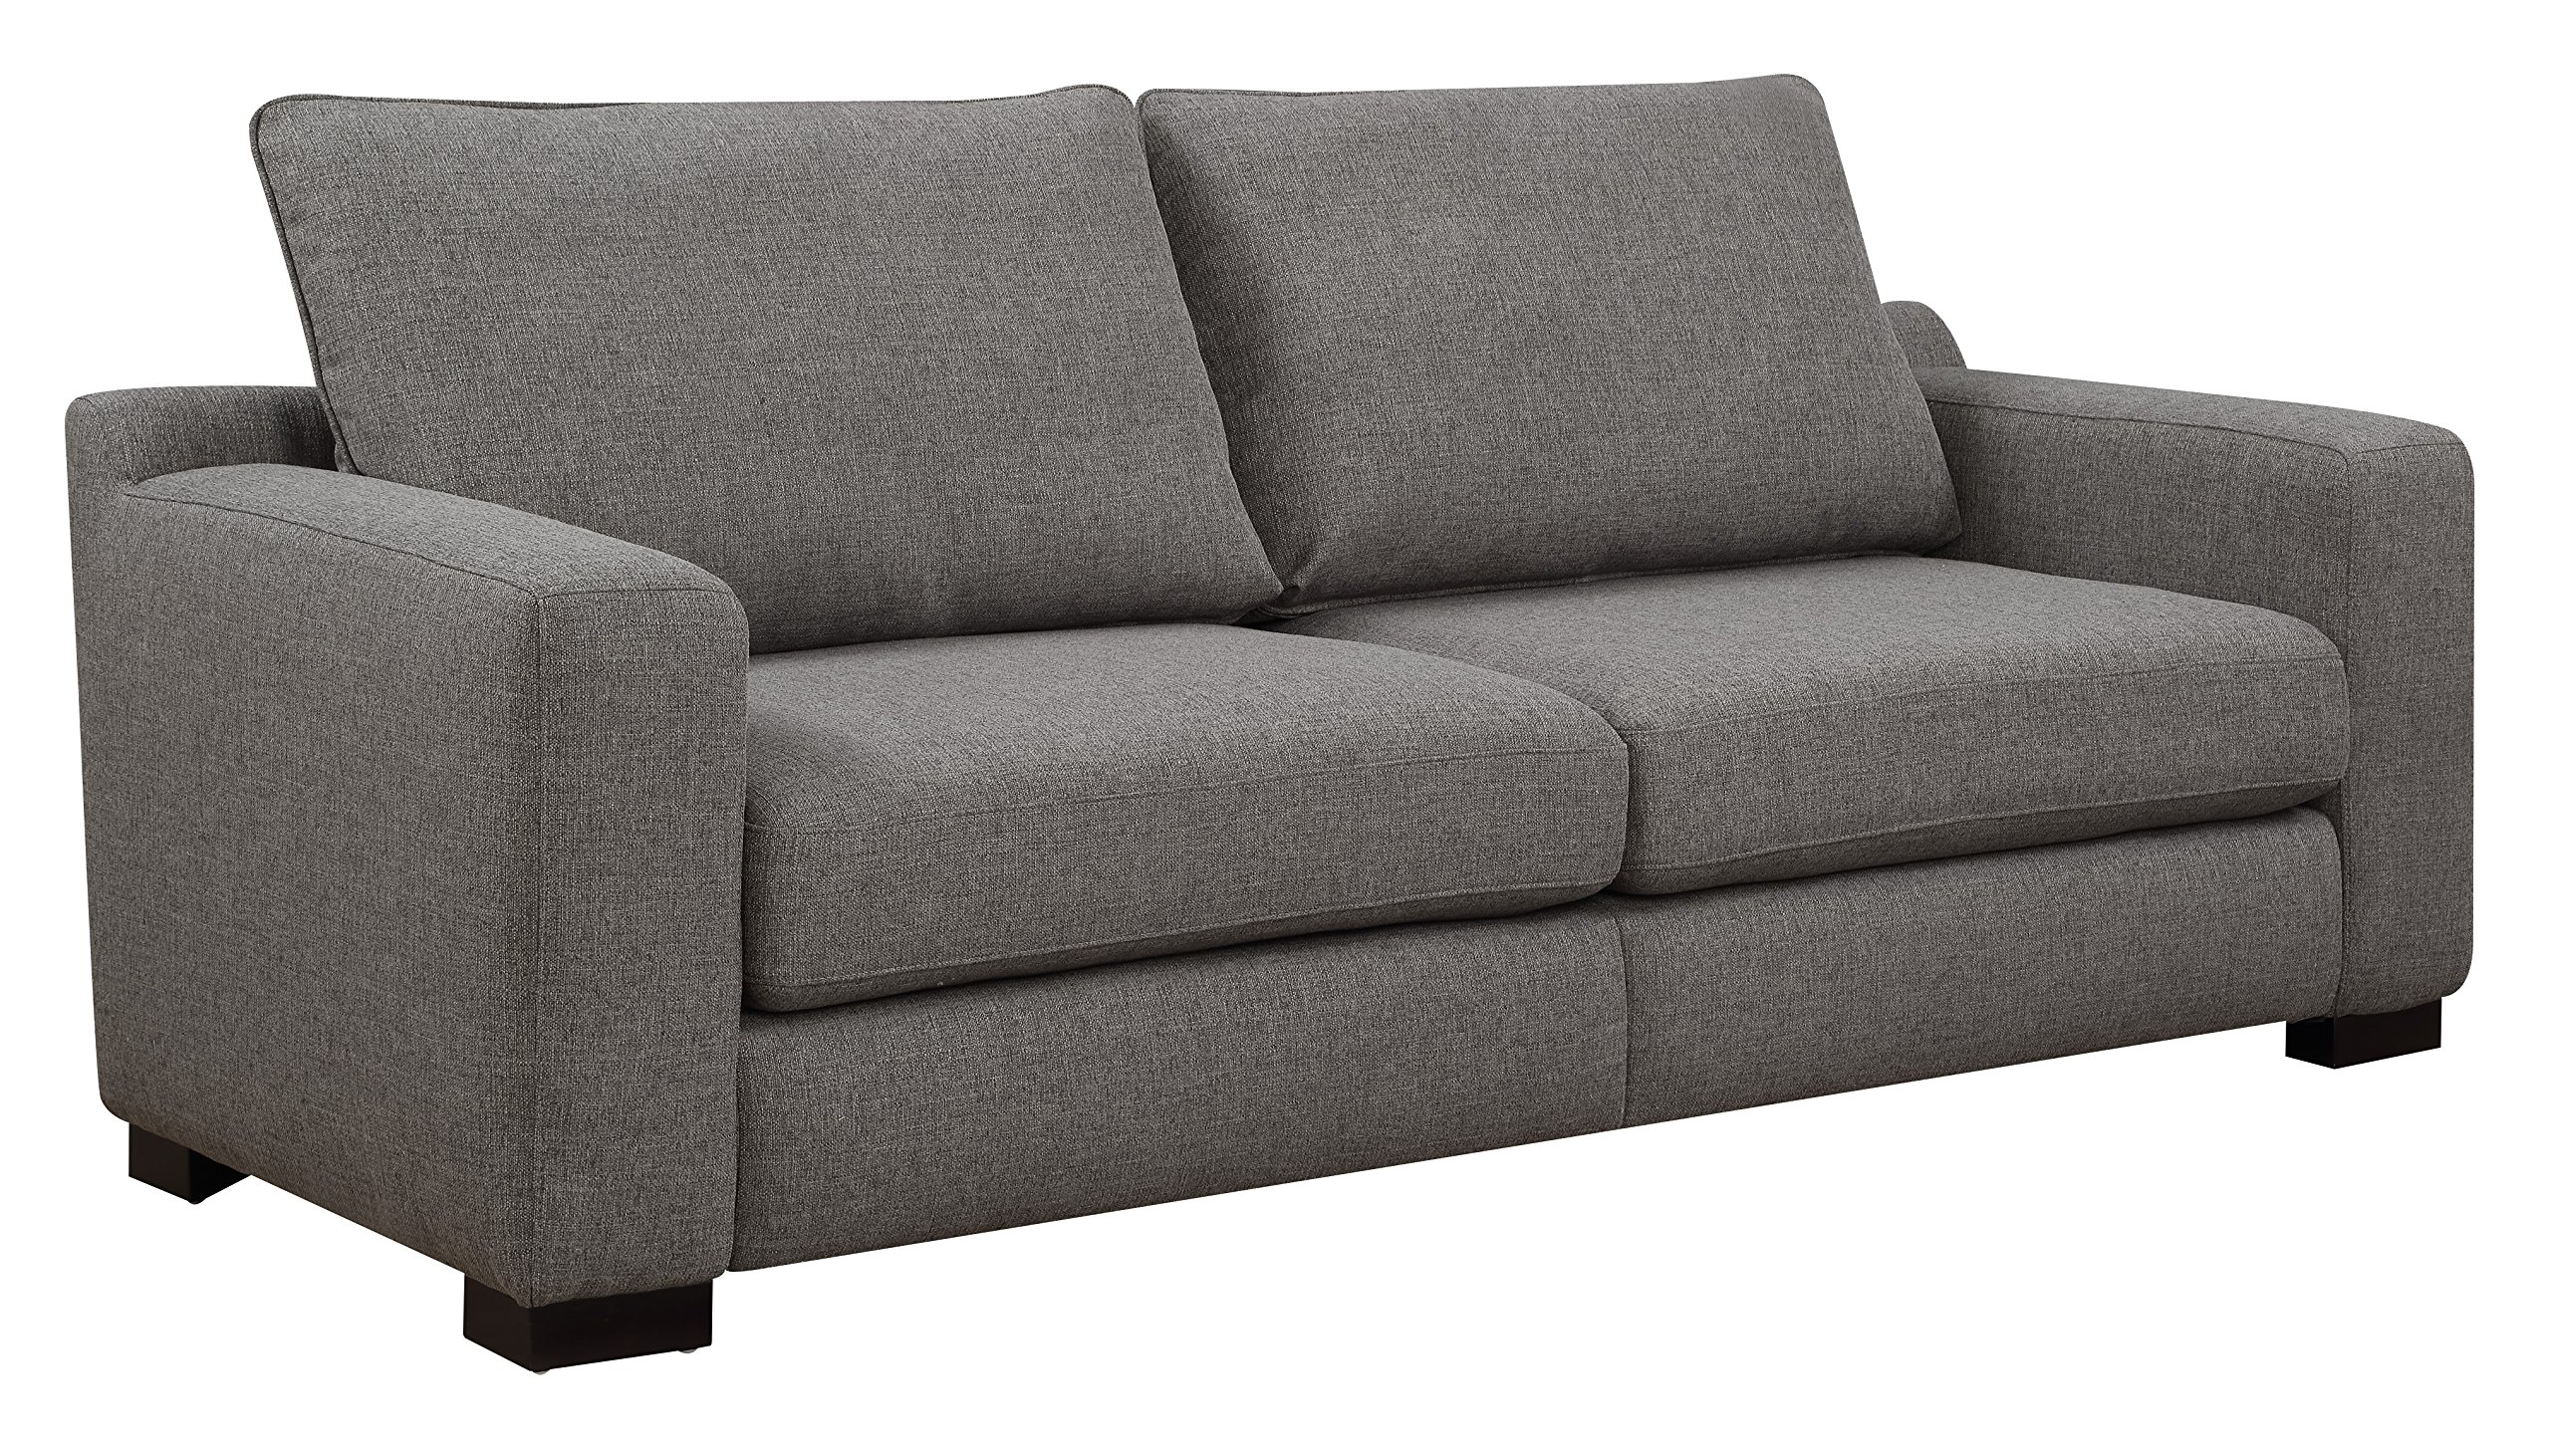 """Serta Geneva 78"""" Sofa in Cozy Gray - Perfect sofa for small living spaces Trendy wide track Arm and low Back Choose from two neutral colors to match your decor - sofas-couches, living-room-furniture, living-room - A1vJl%2BZo8DL -"""